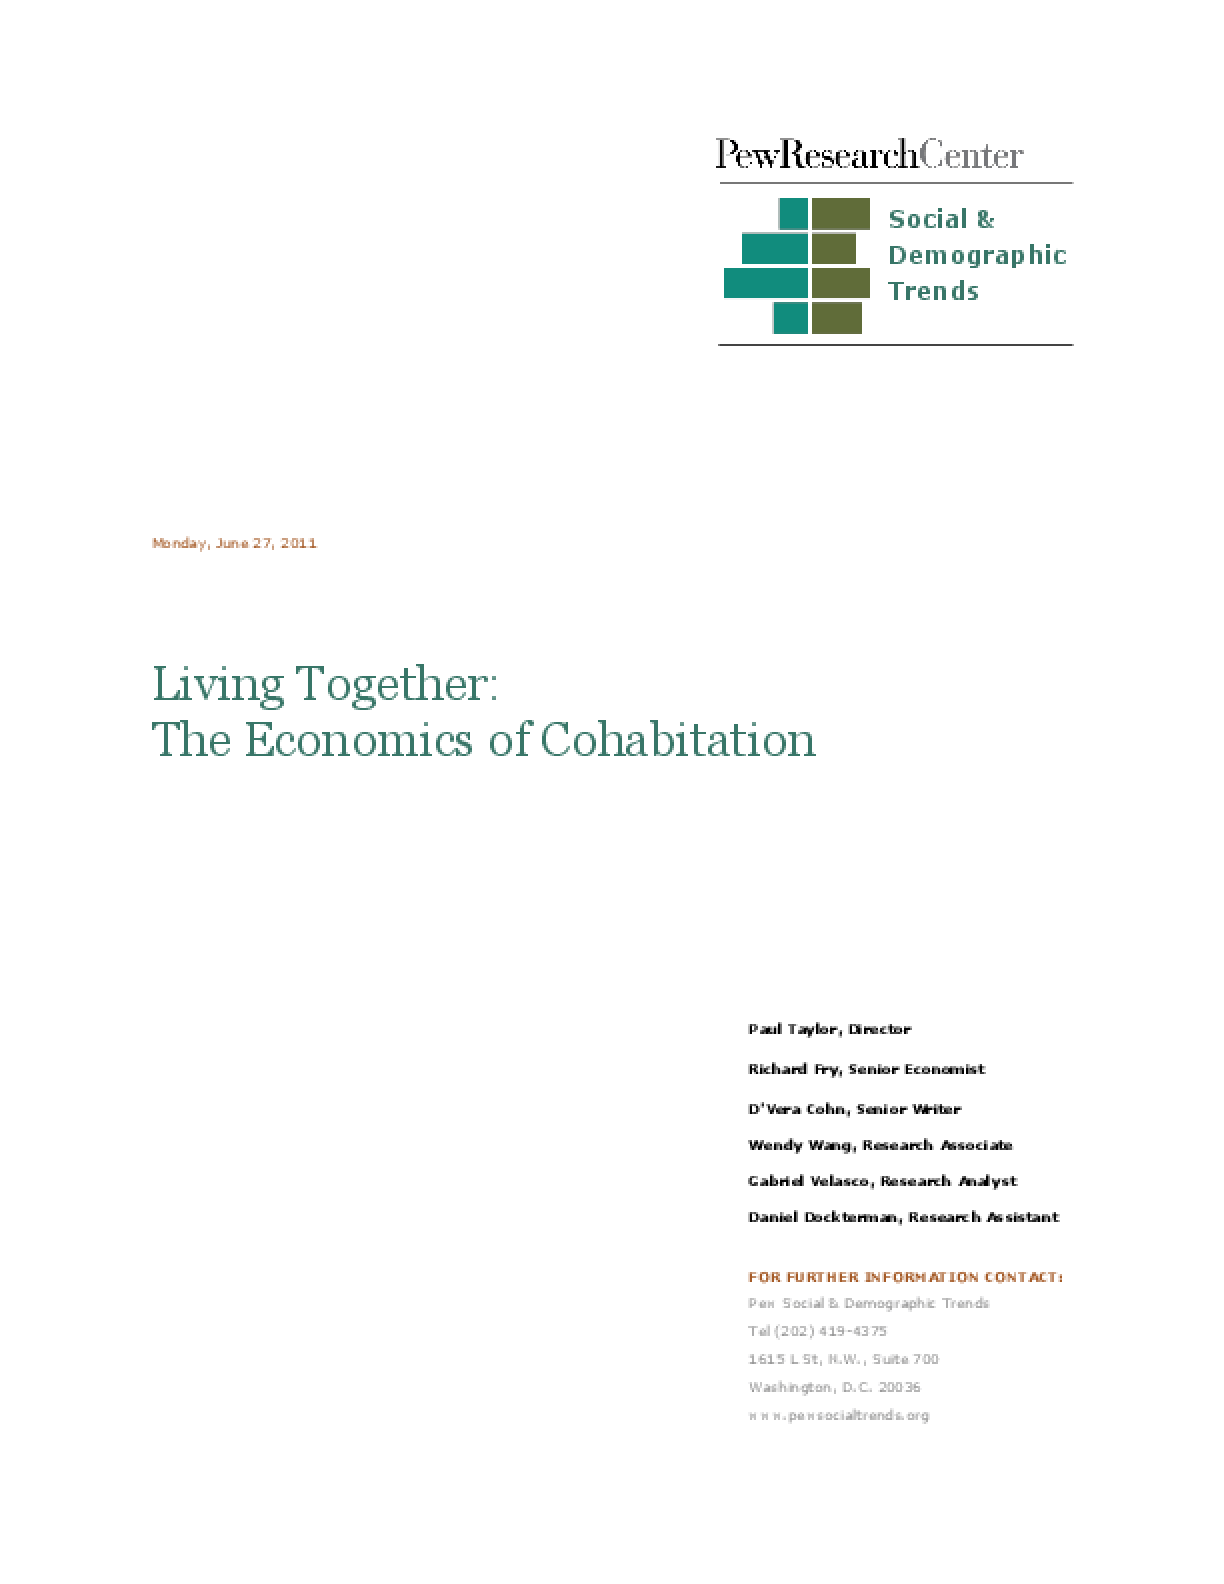 Living Together: The Economics of Cohabitation